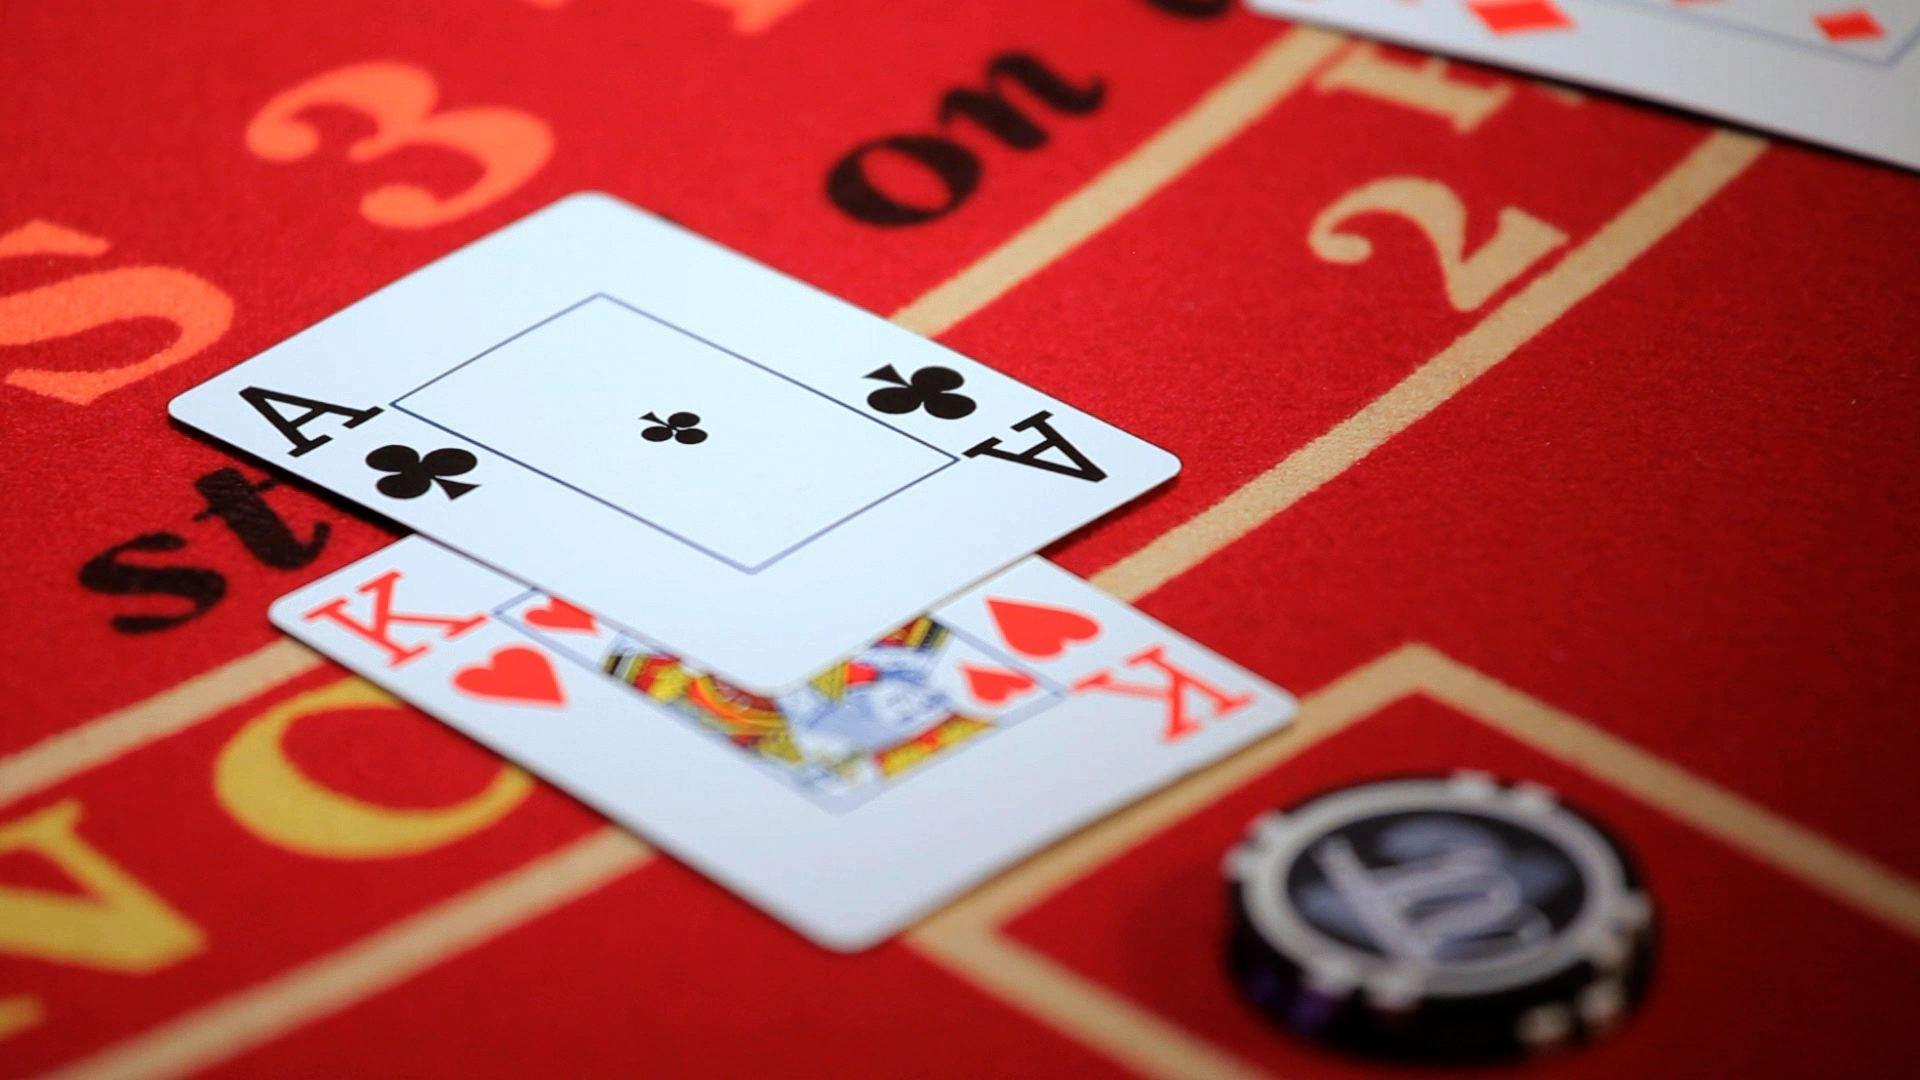 Tips for BlackJack beginners